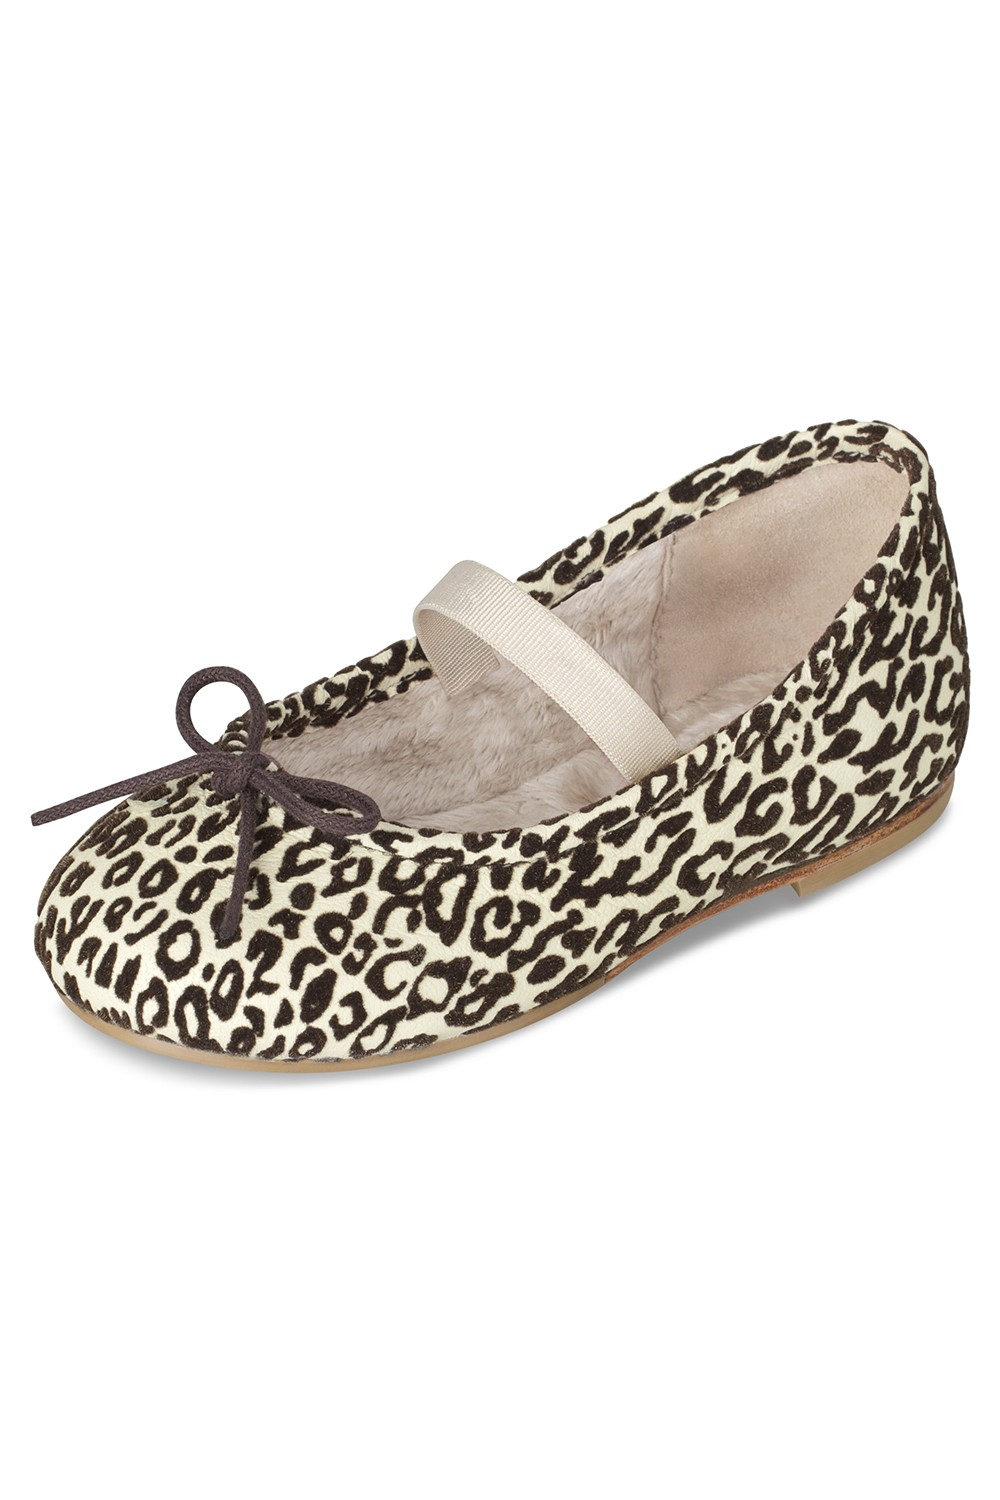 Arabella Leopard - Fur Lining Toddler Toddlers Fashion Shoes